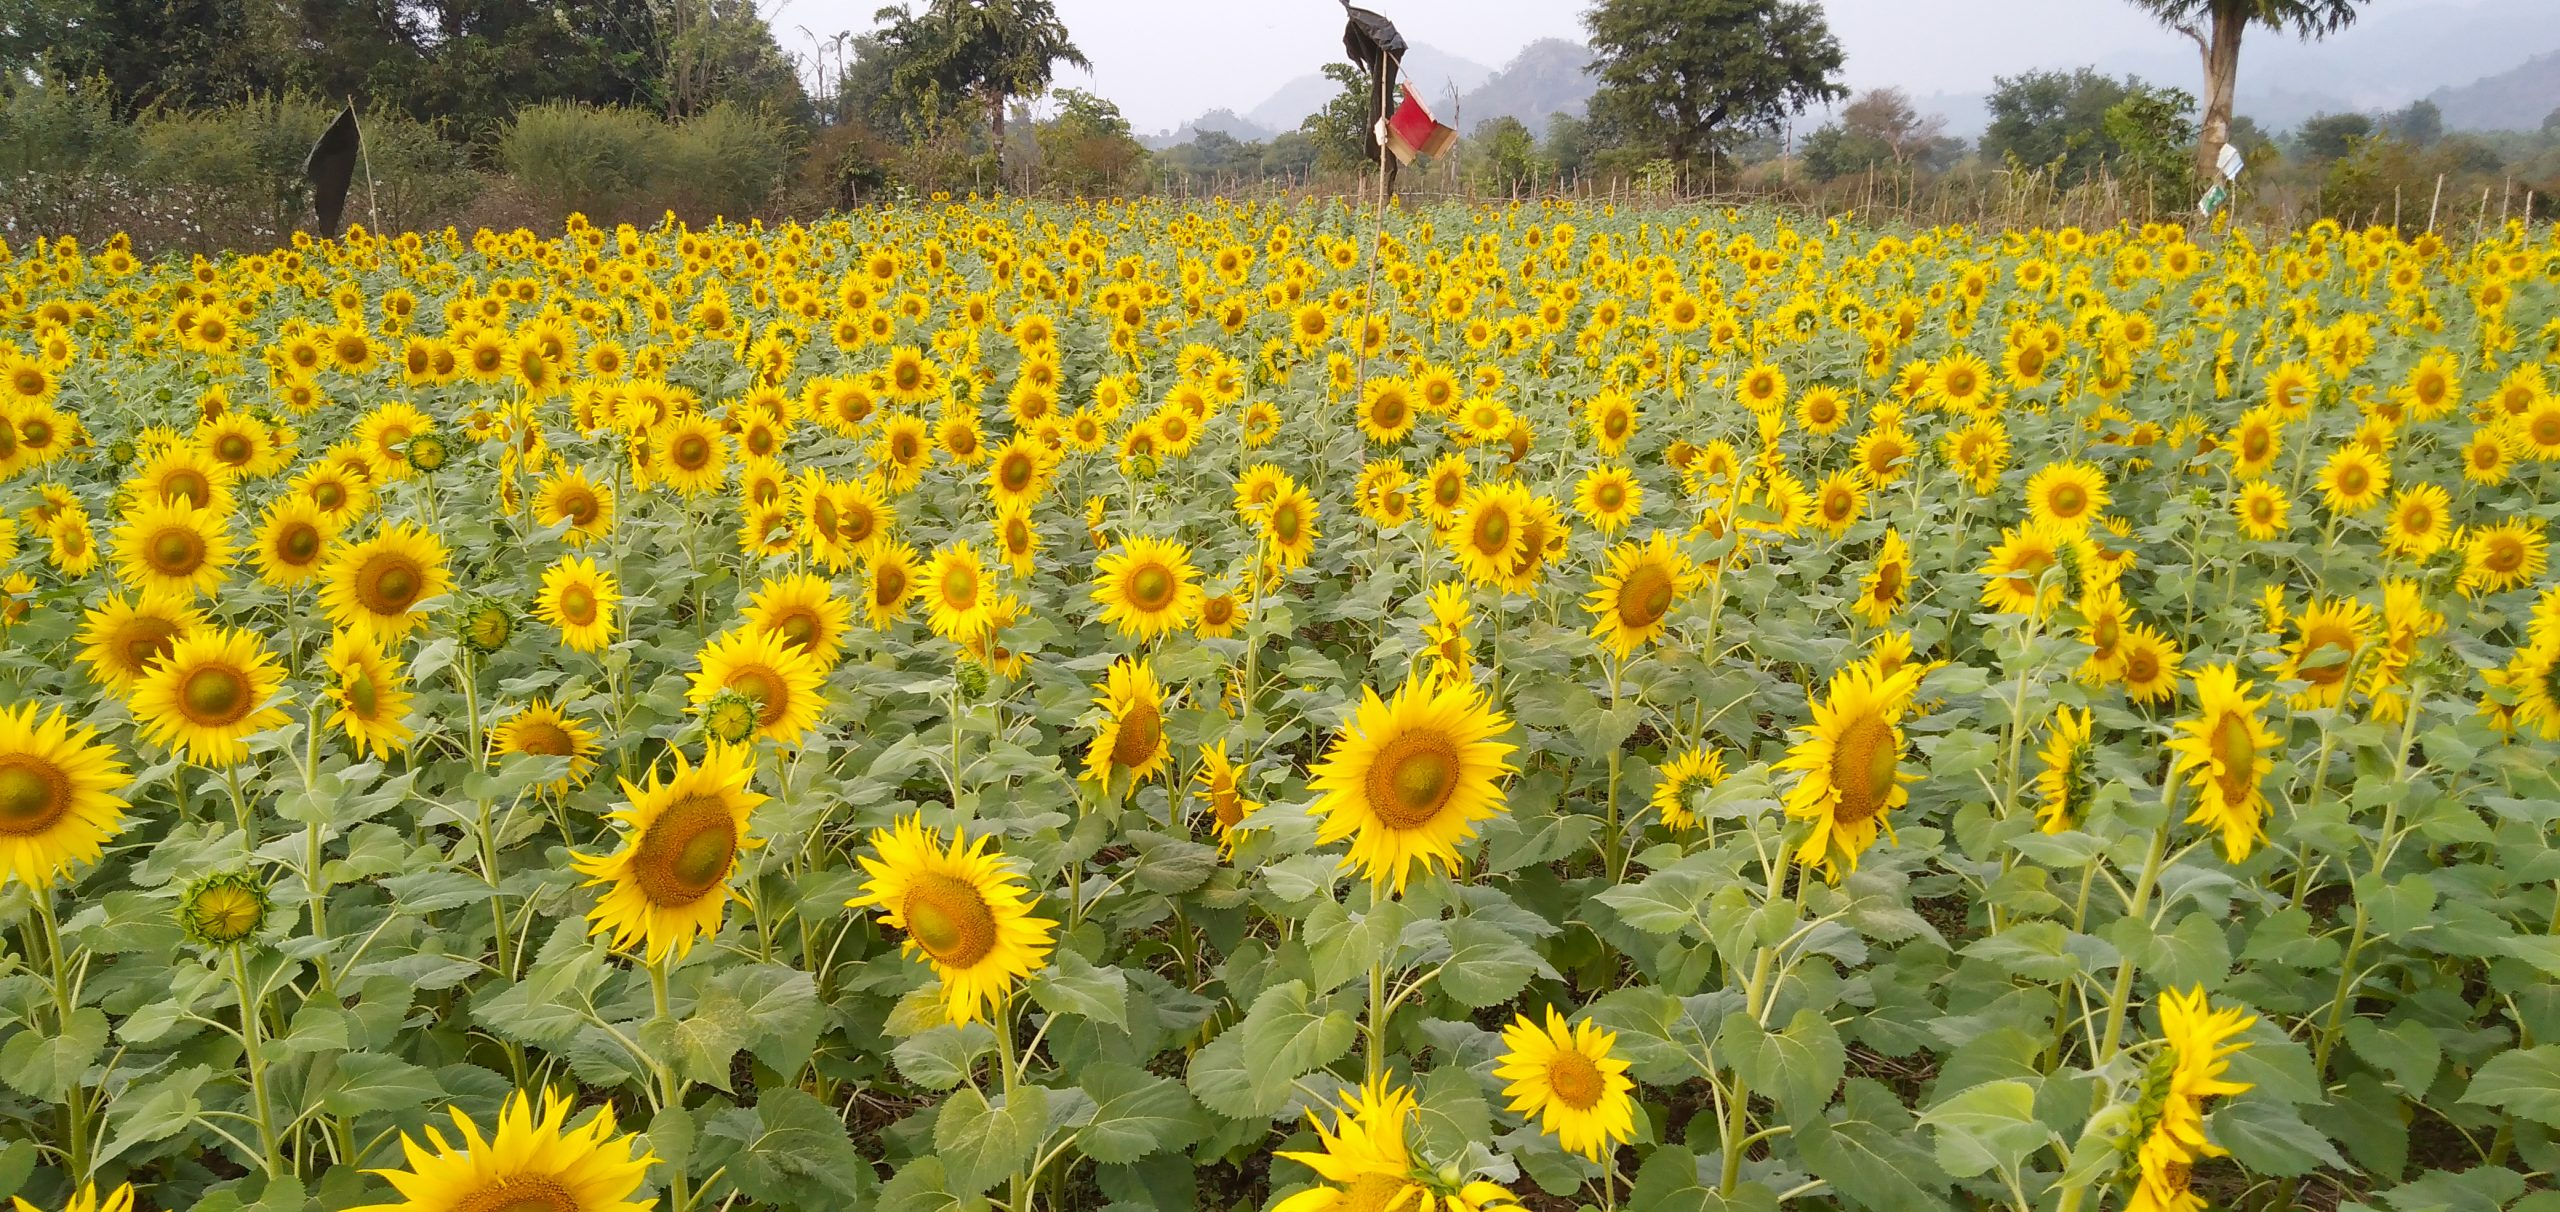 Sunflowers grown by Ghodabadi community members in India